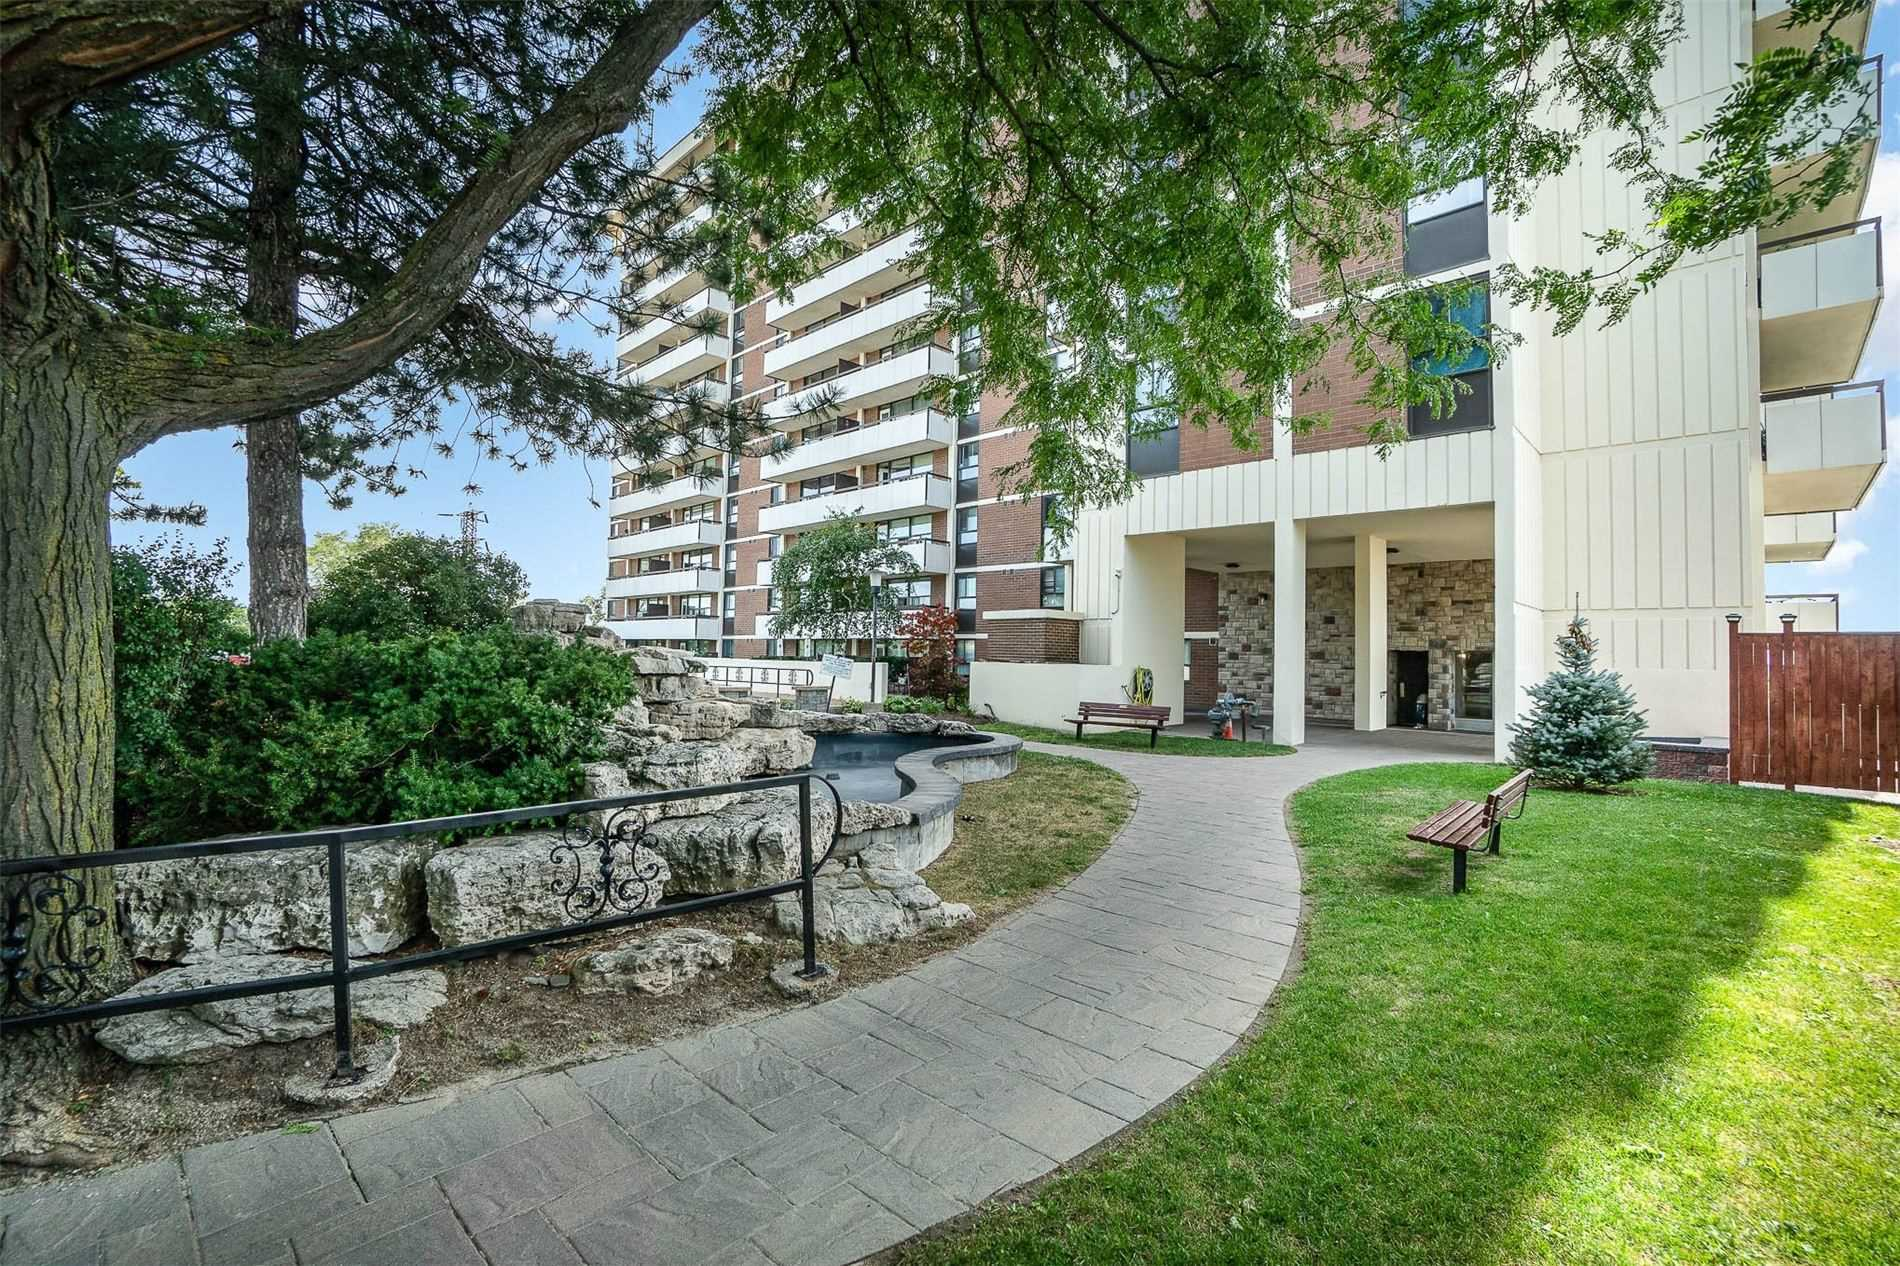 541 Blackthorn Ave, Toronto, Ontario M6M5A6, 1 Bedroom Bedrooms, 4 Rooms Rooms,1 BathroomBathrooms,Condo Apt,For Sale,Blackthorn,W4899494